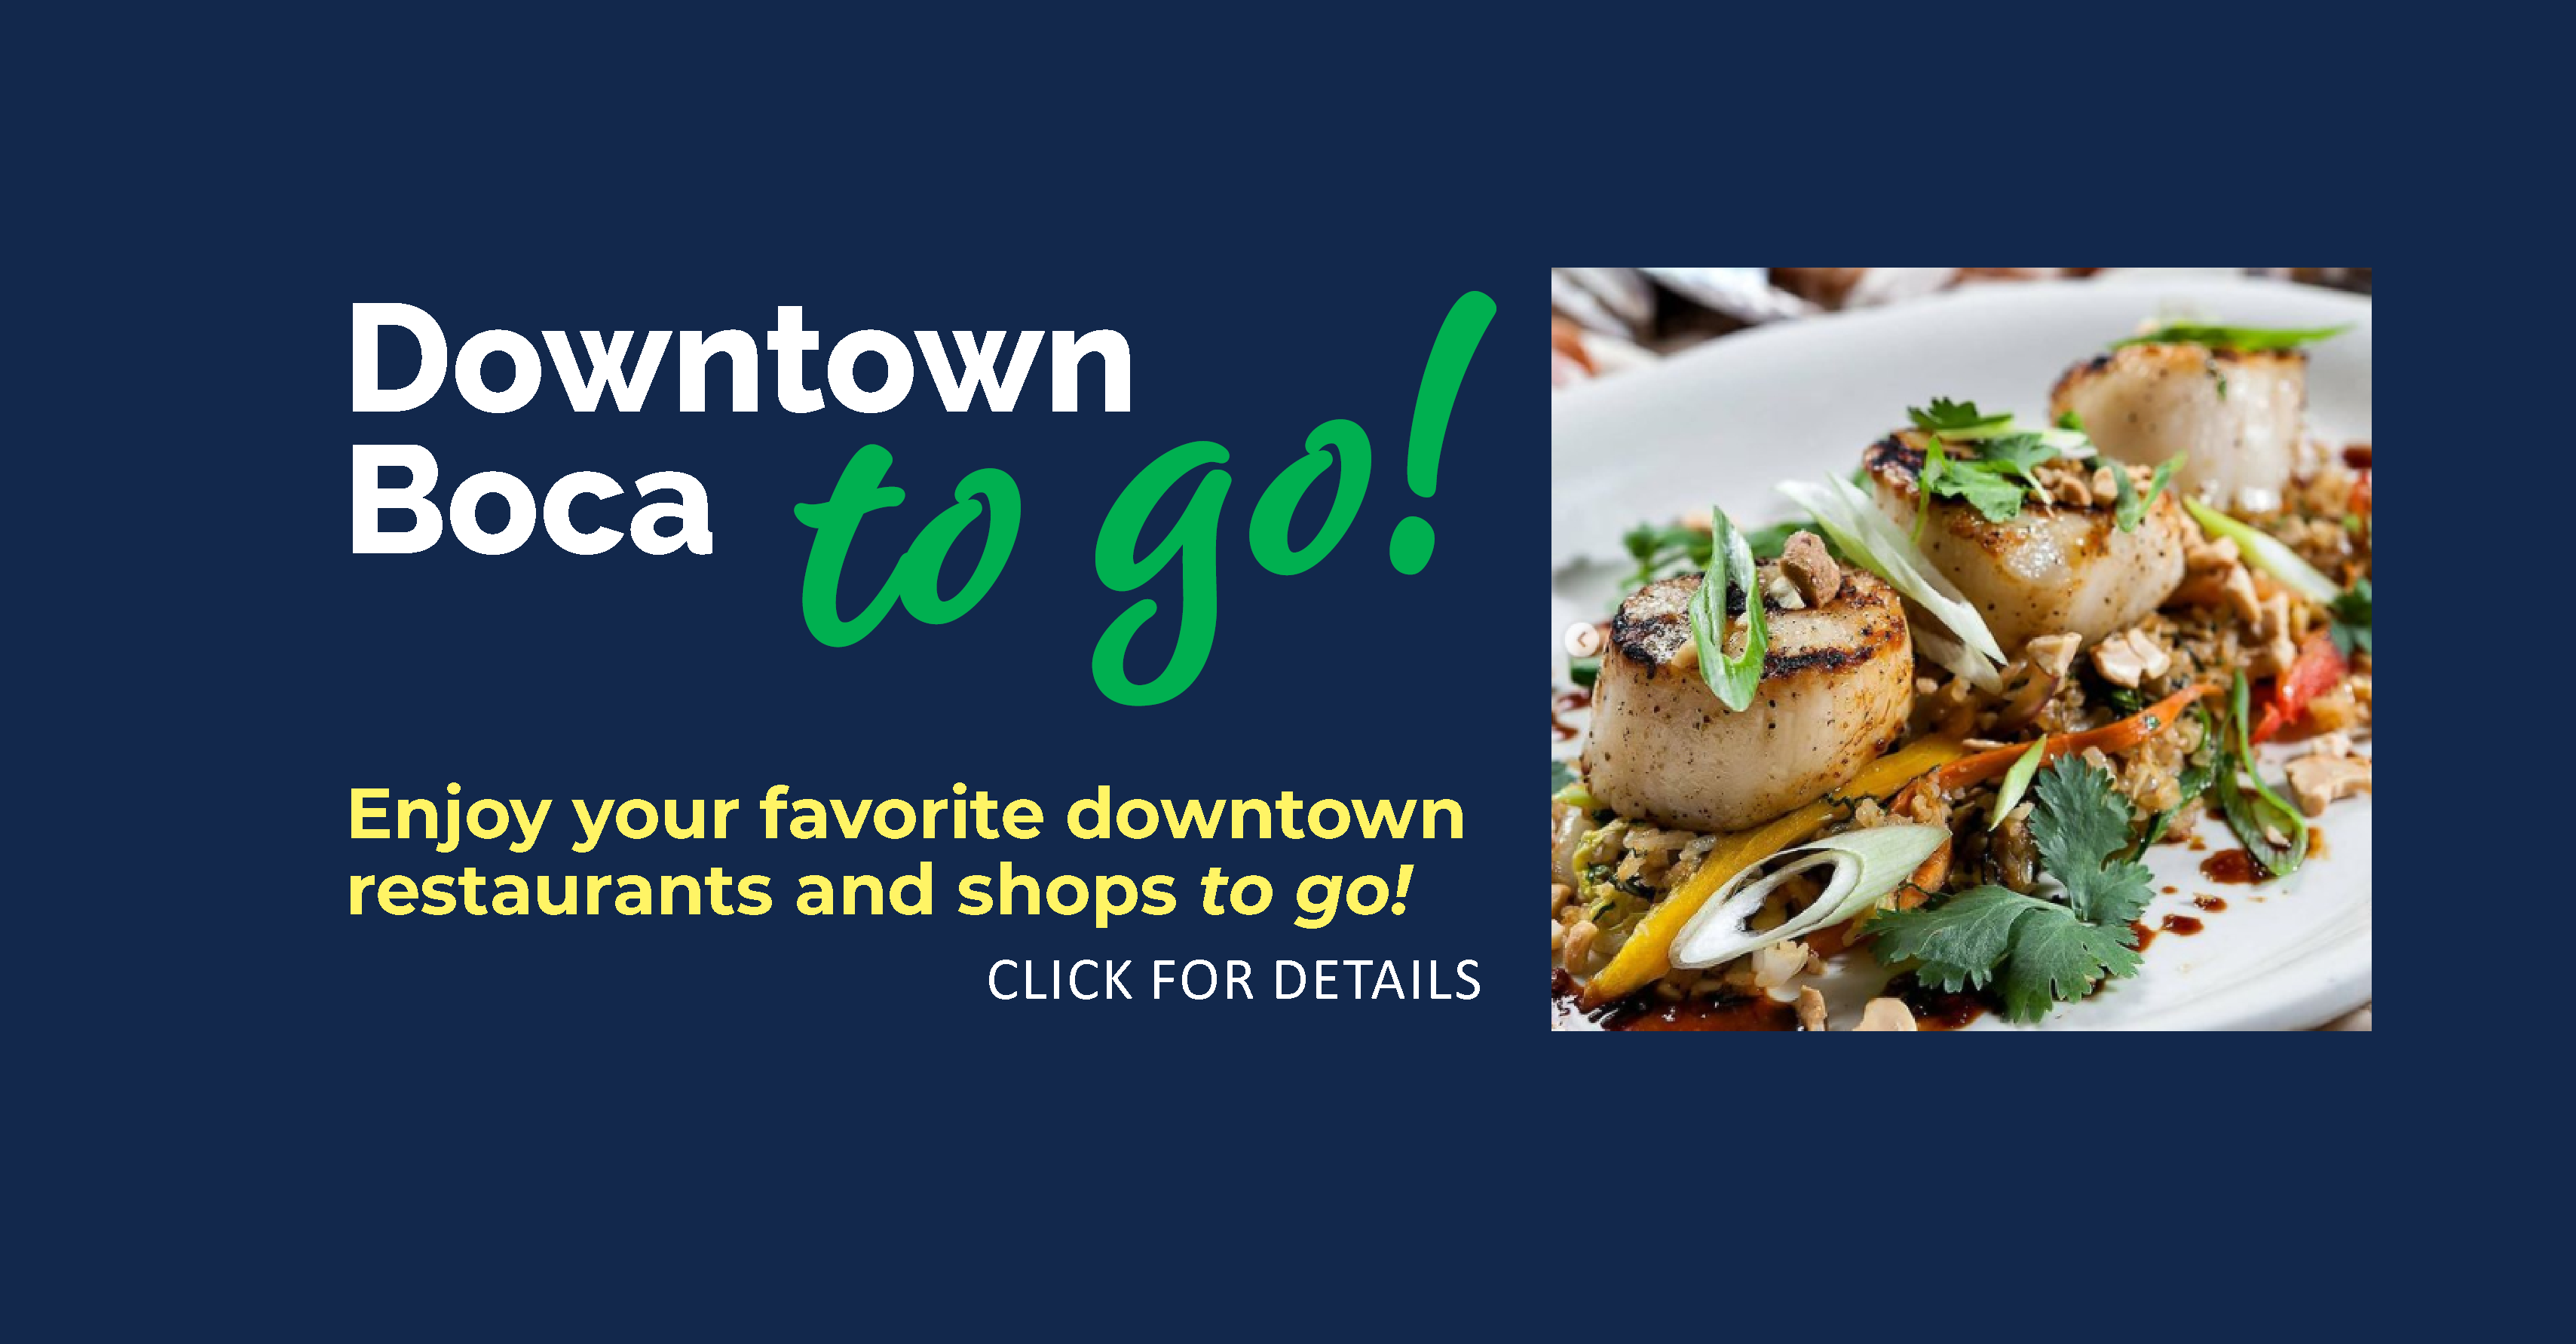 Downtown Boca to go! 11.18.2020